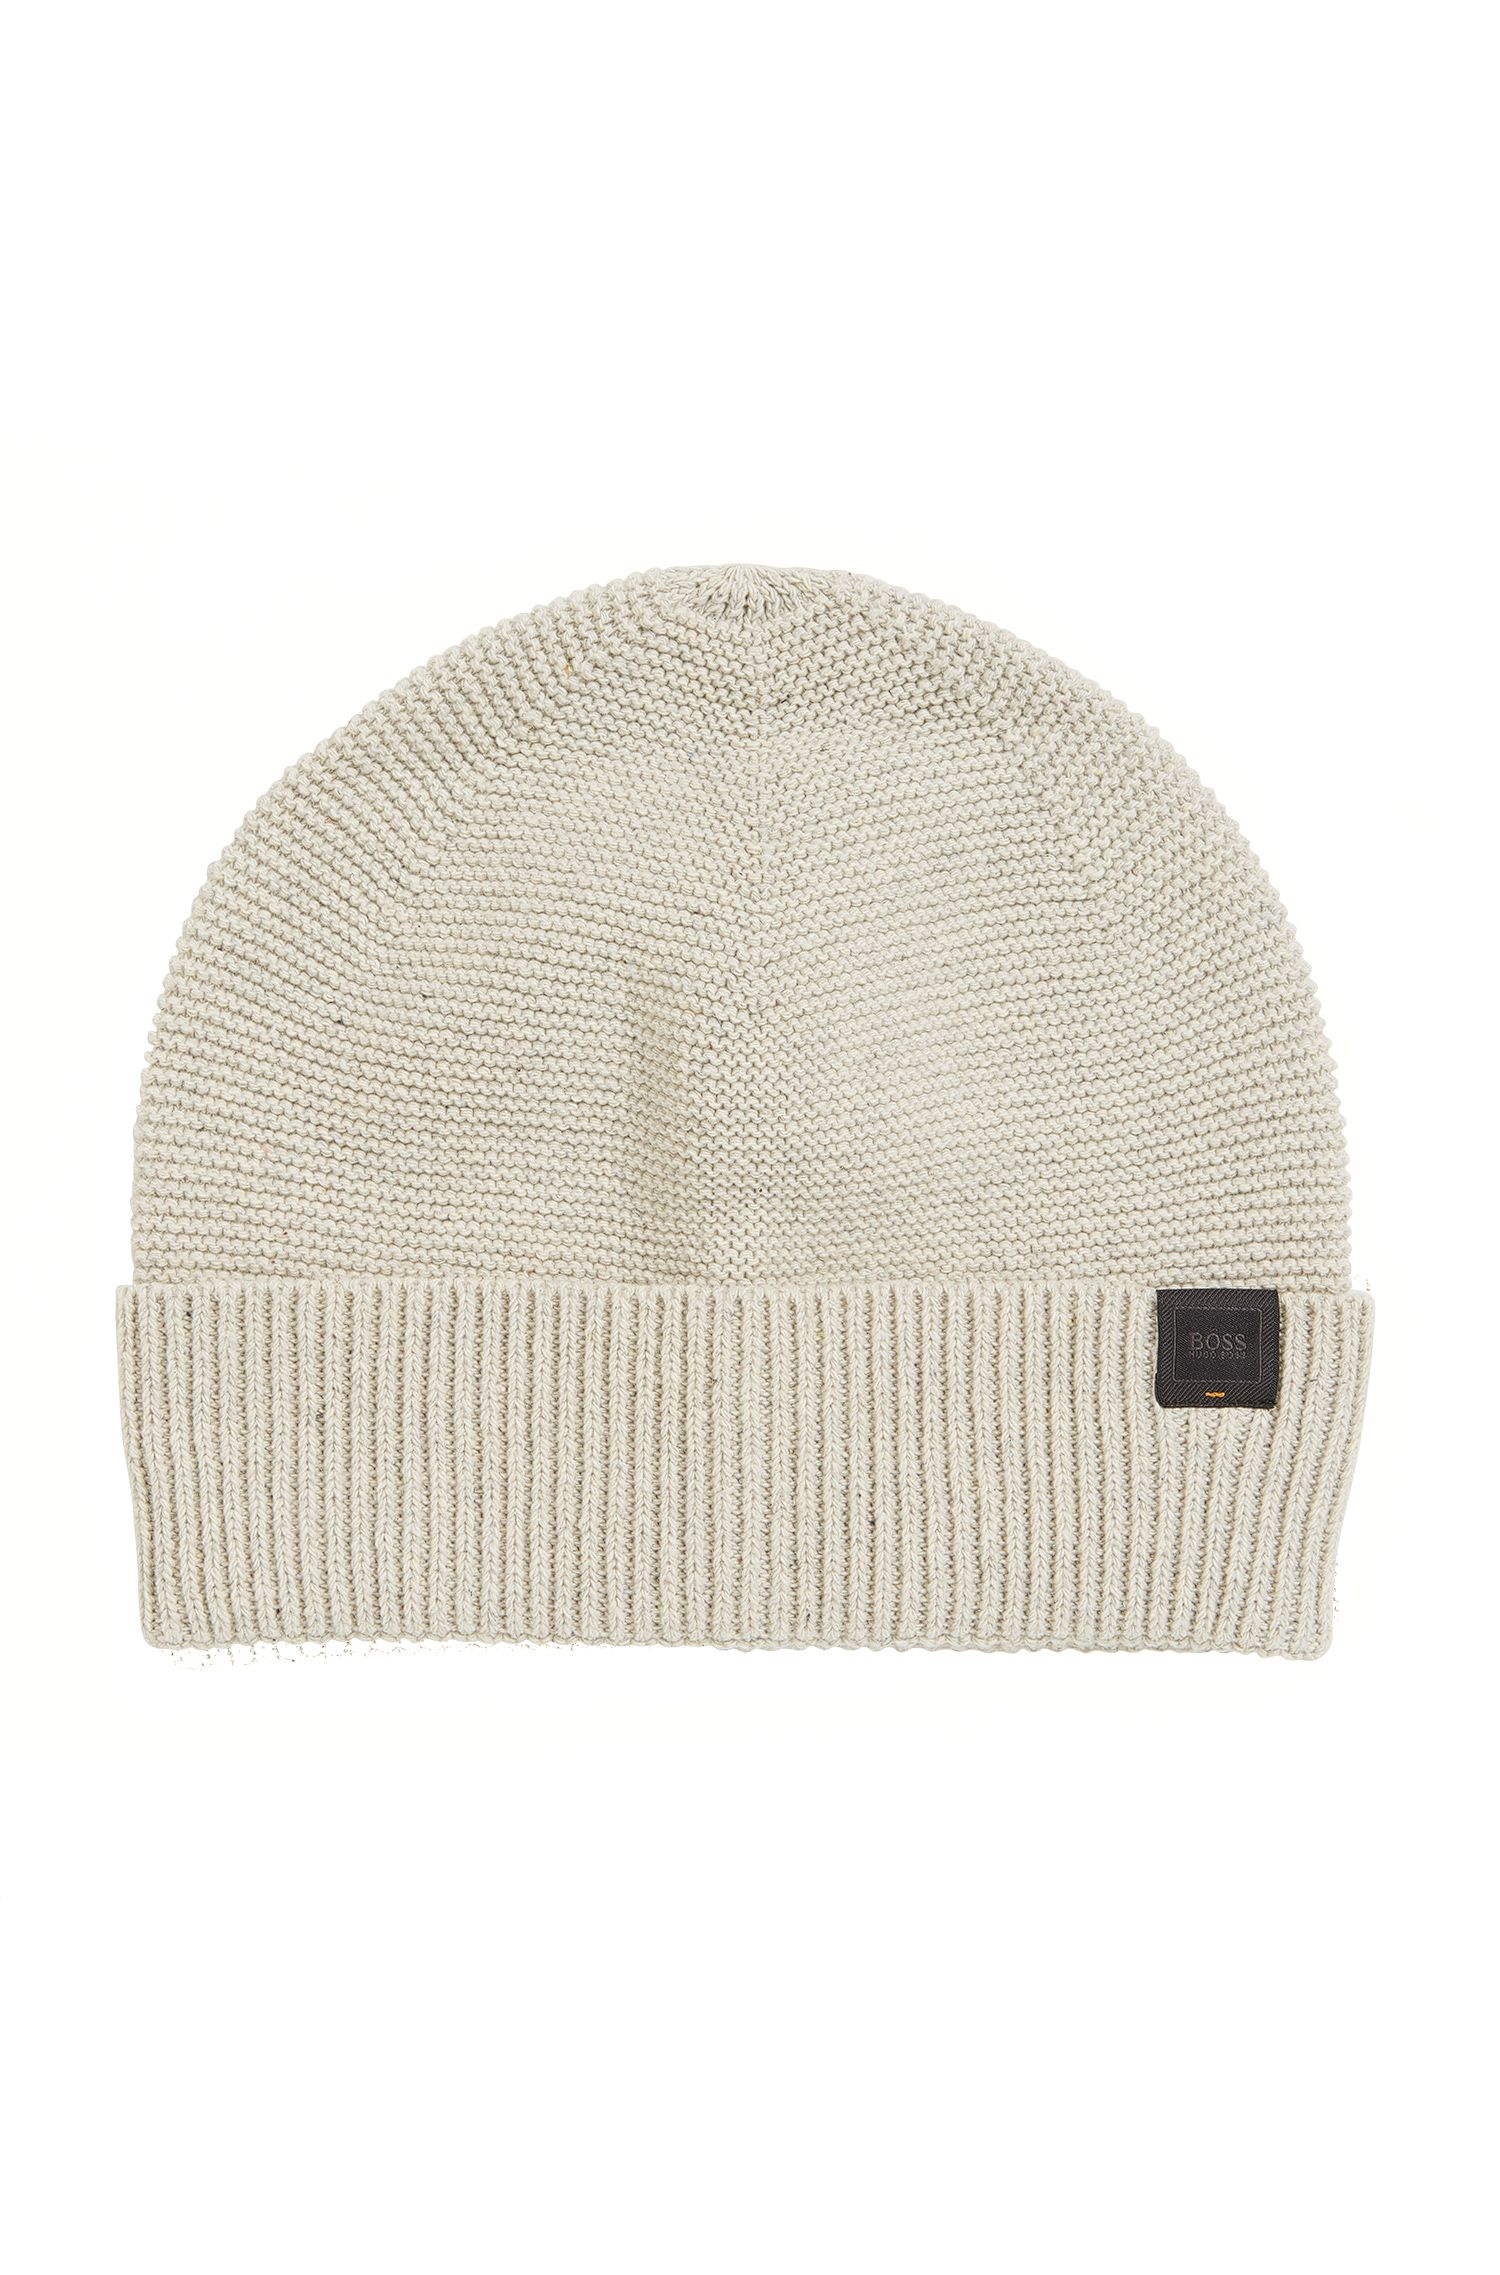 Italian-made knitted beanie hat in a cotton blend